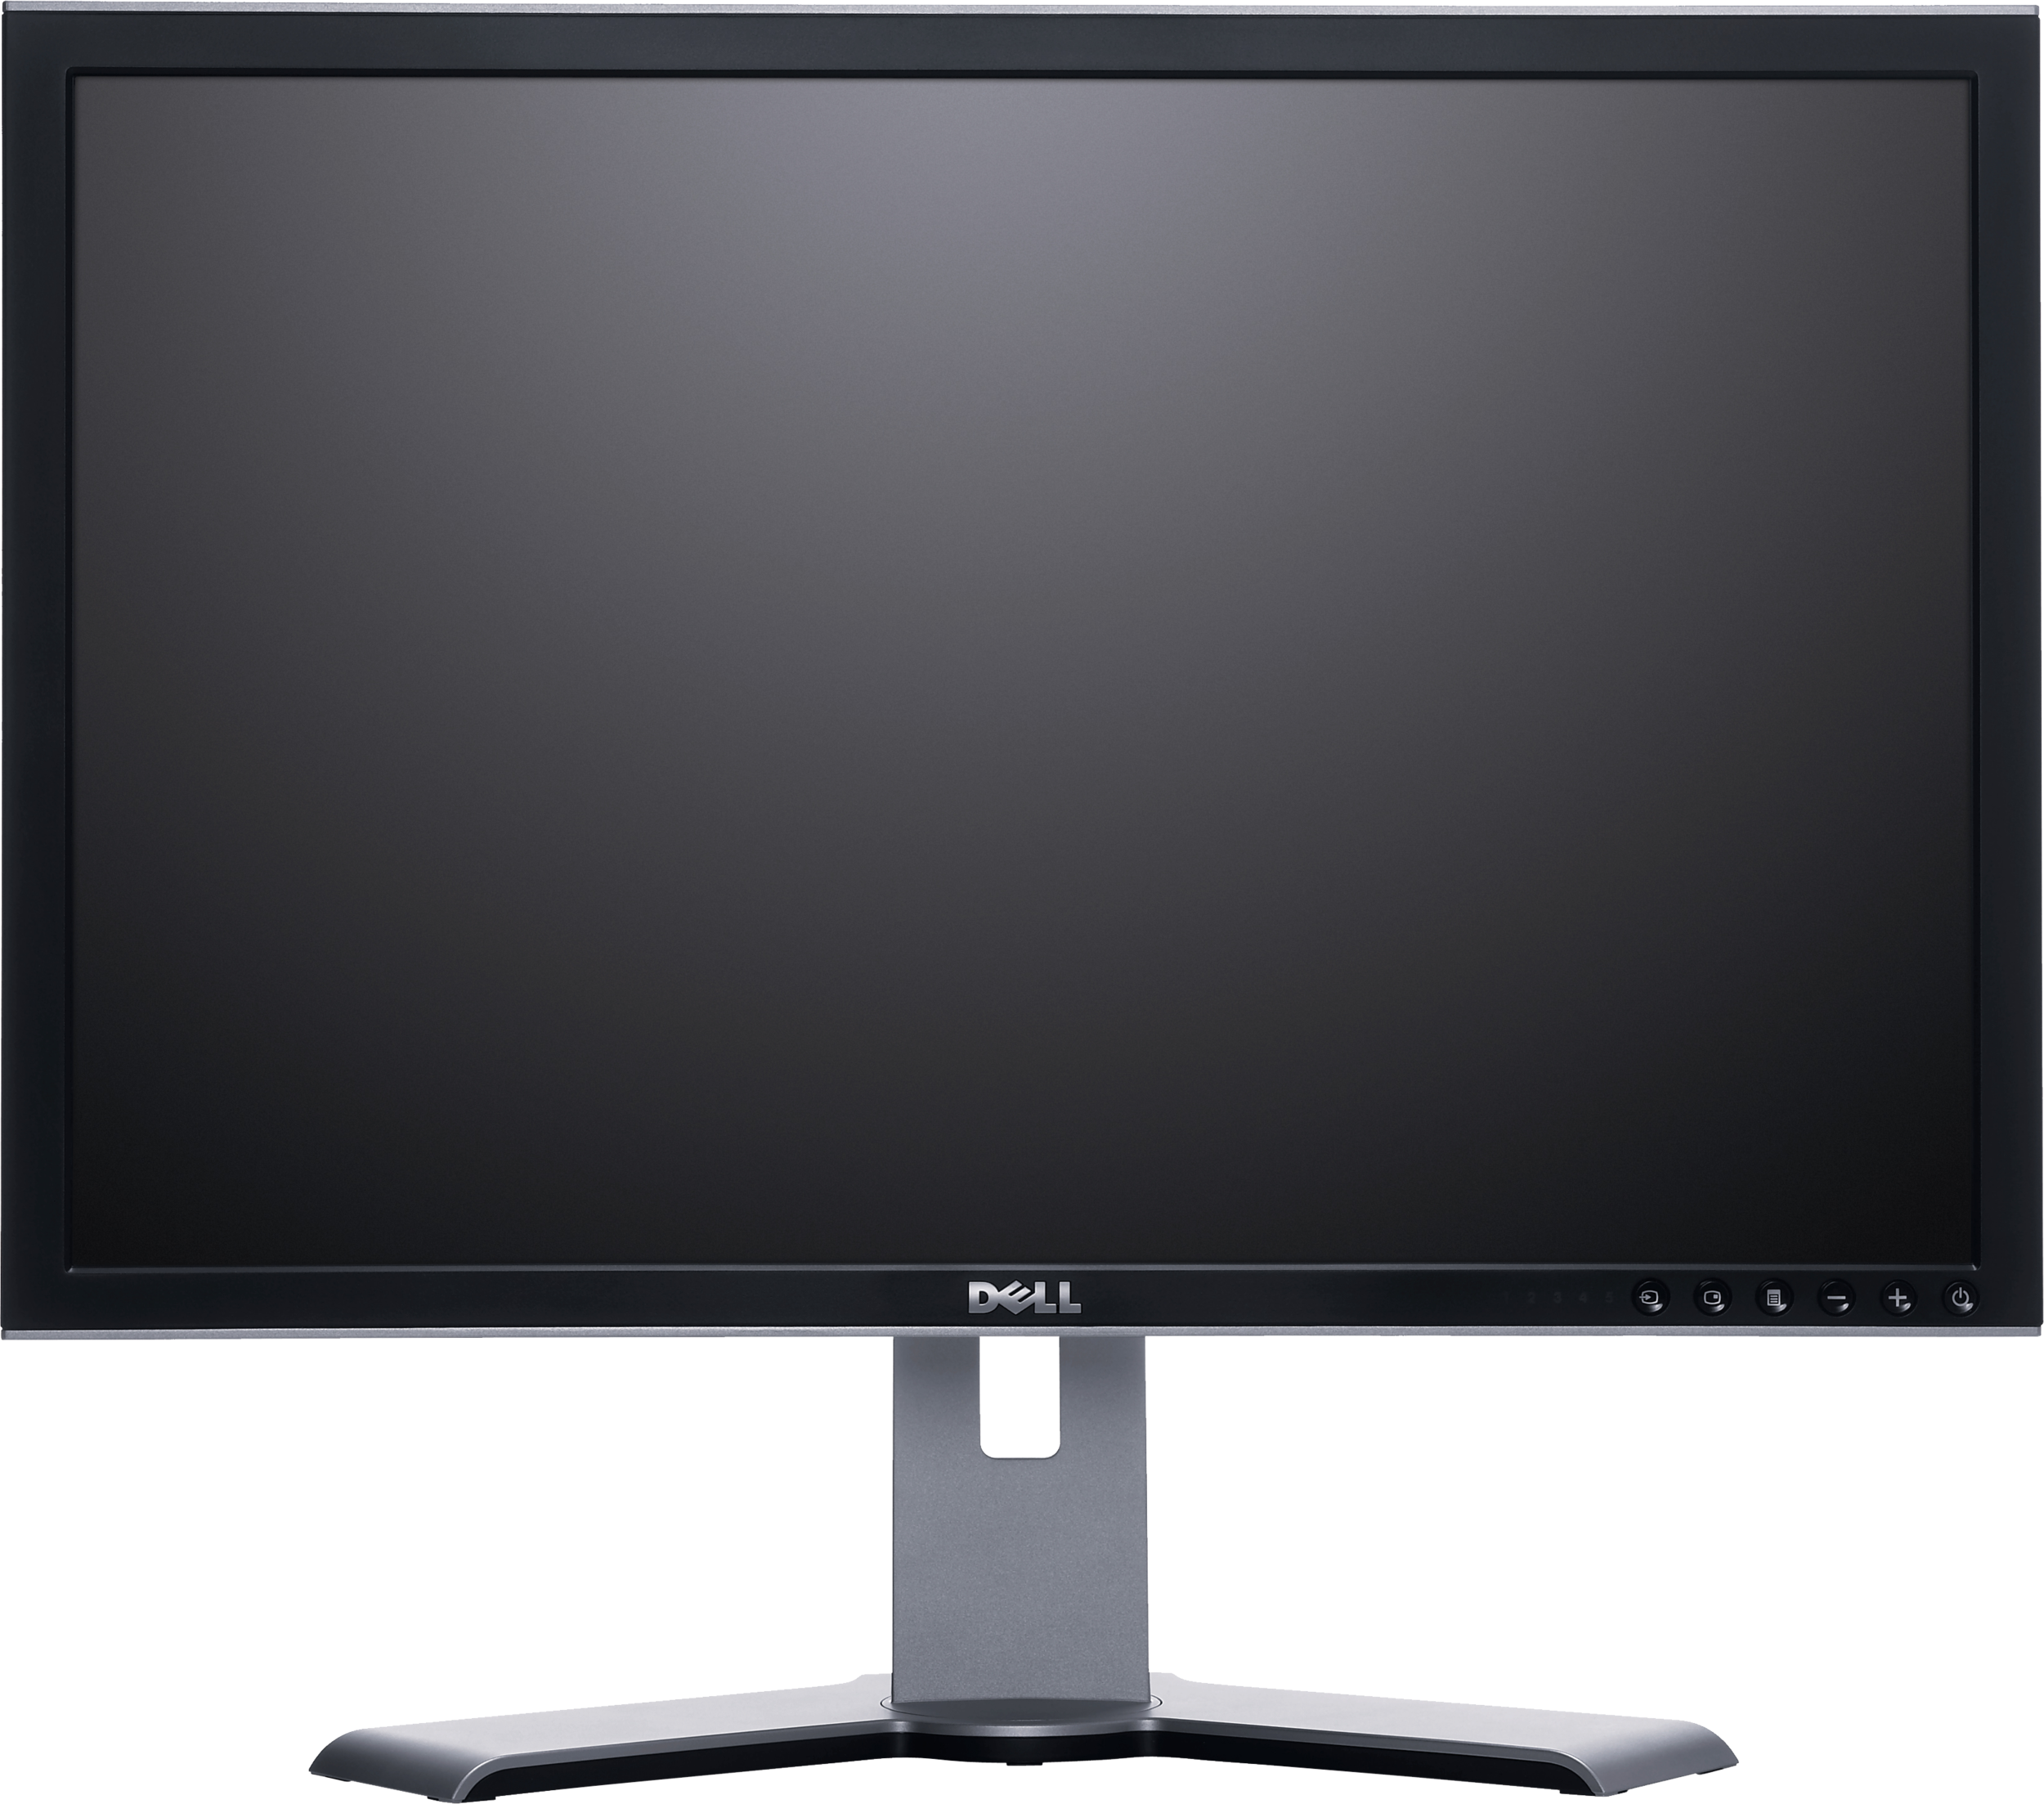 Dell LED Monitor.png